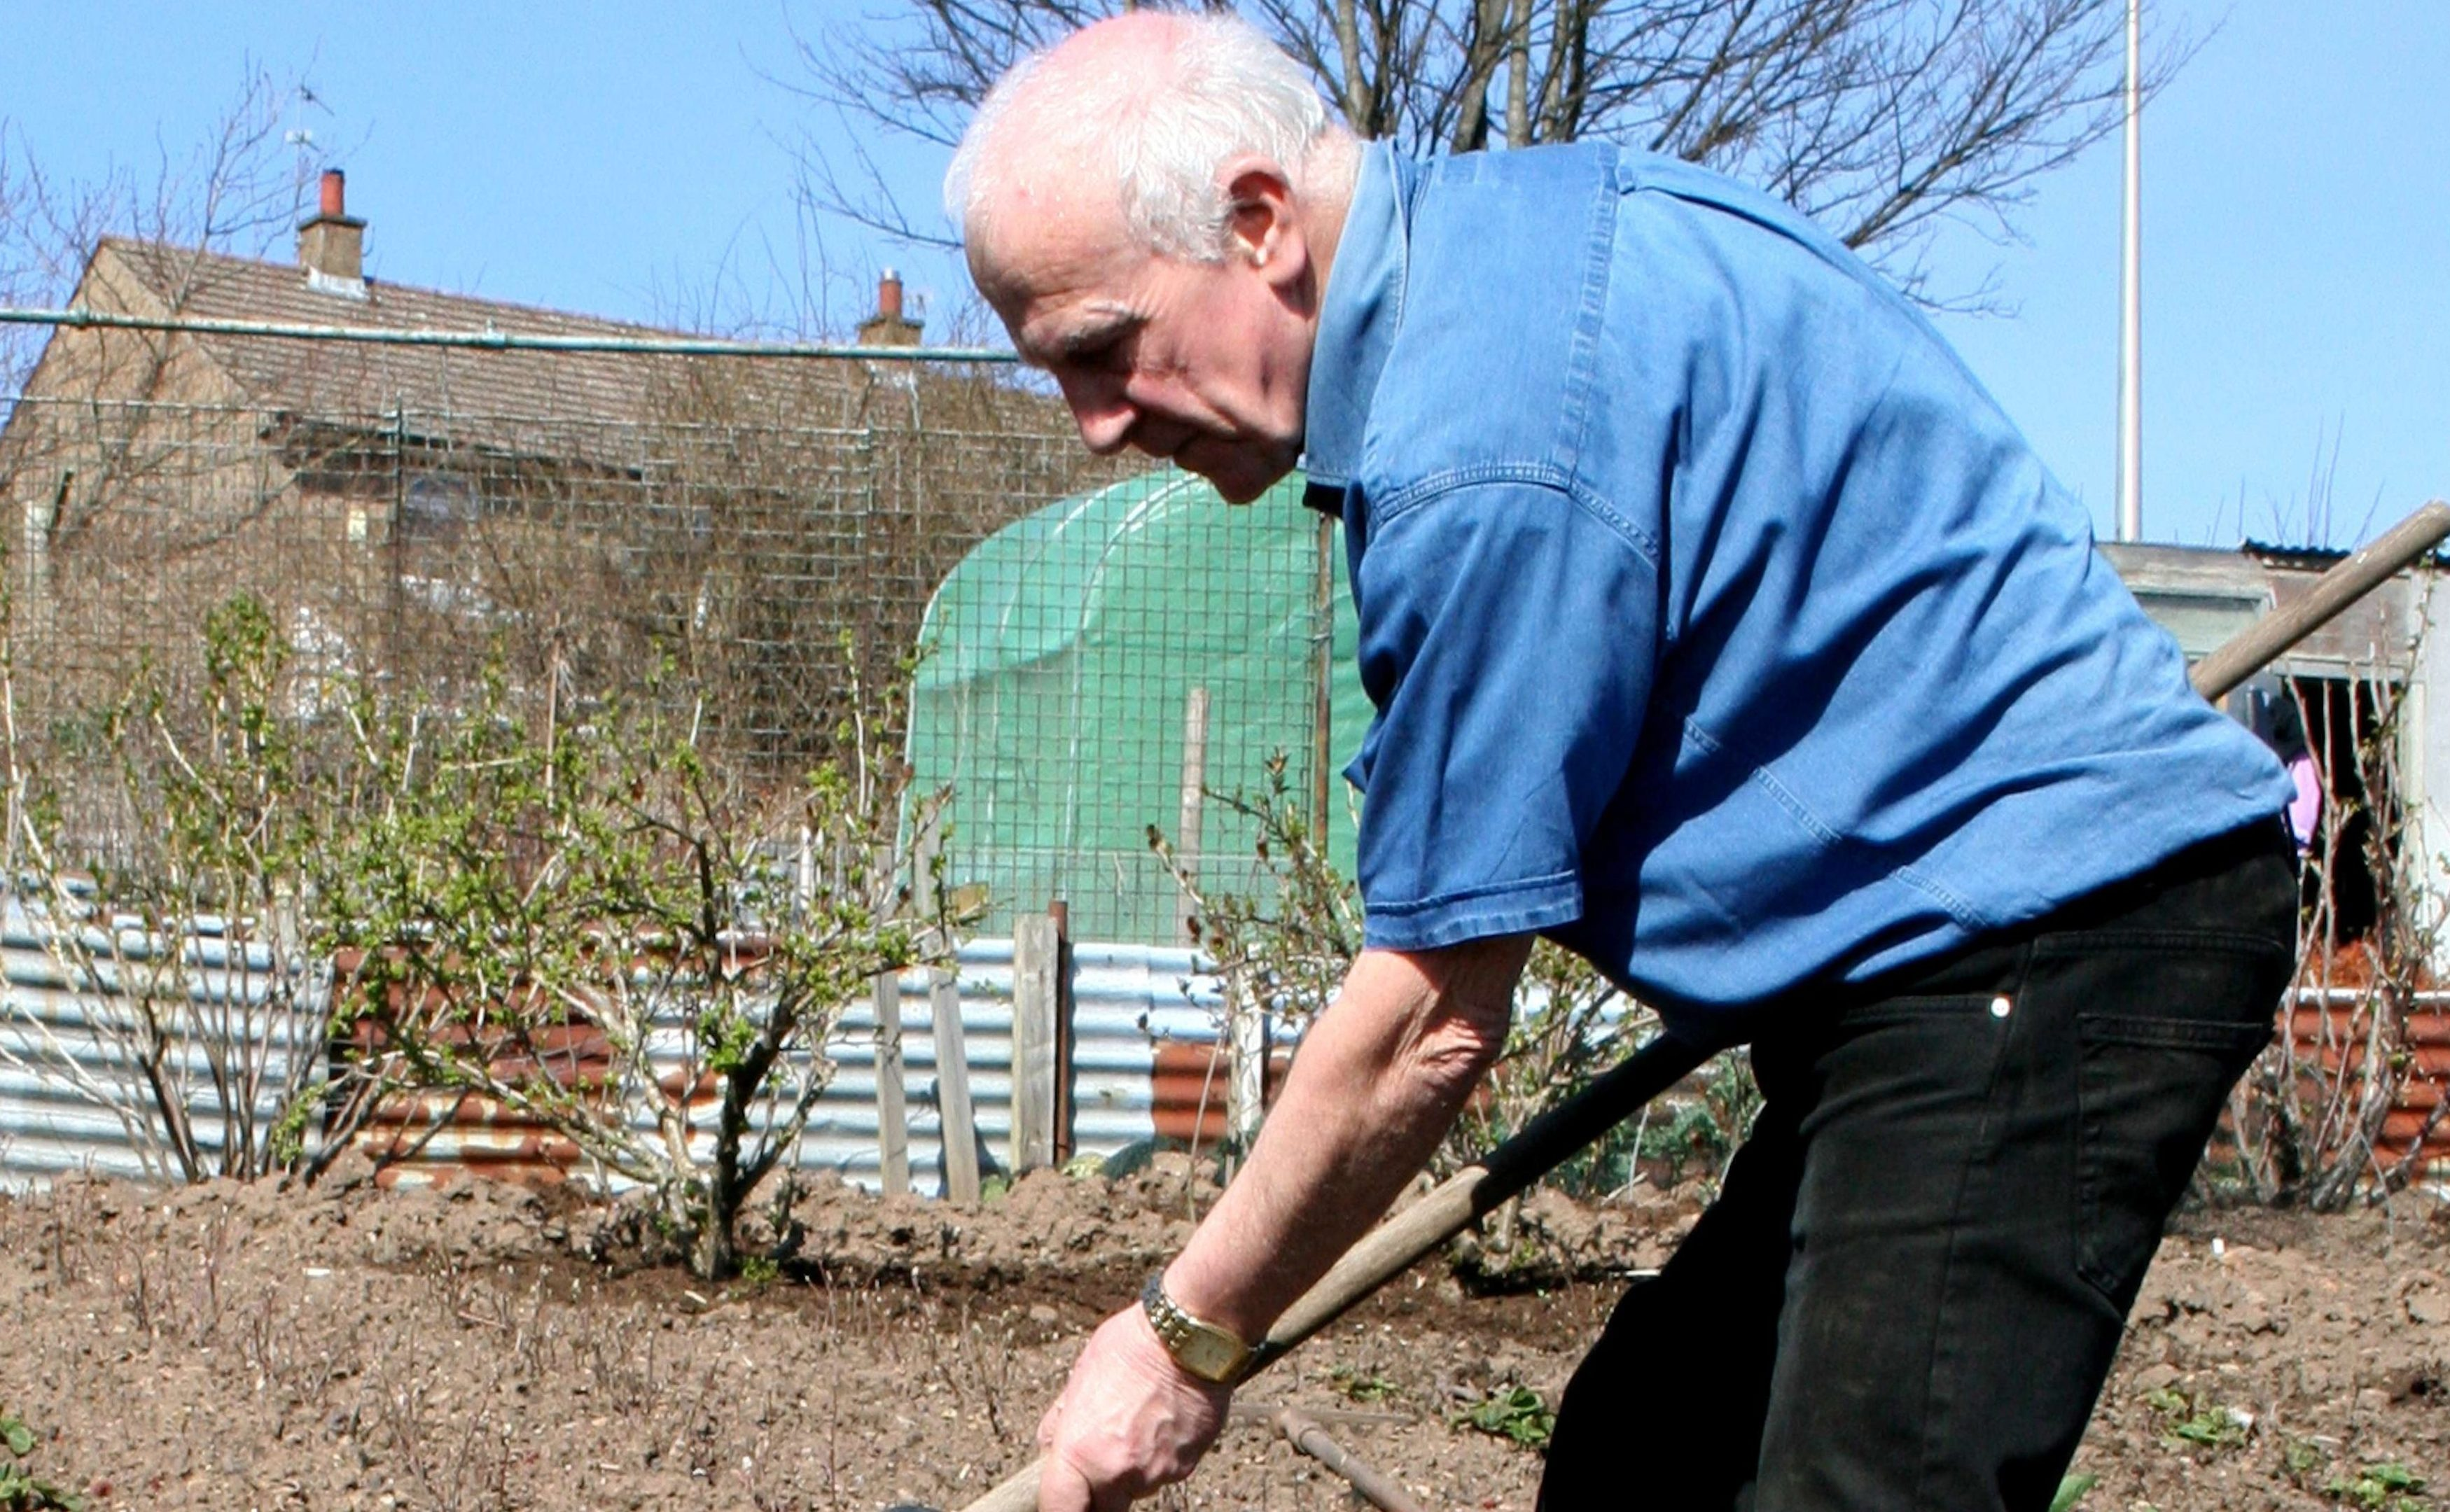 John Stoa at work in the garden